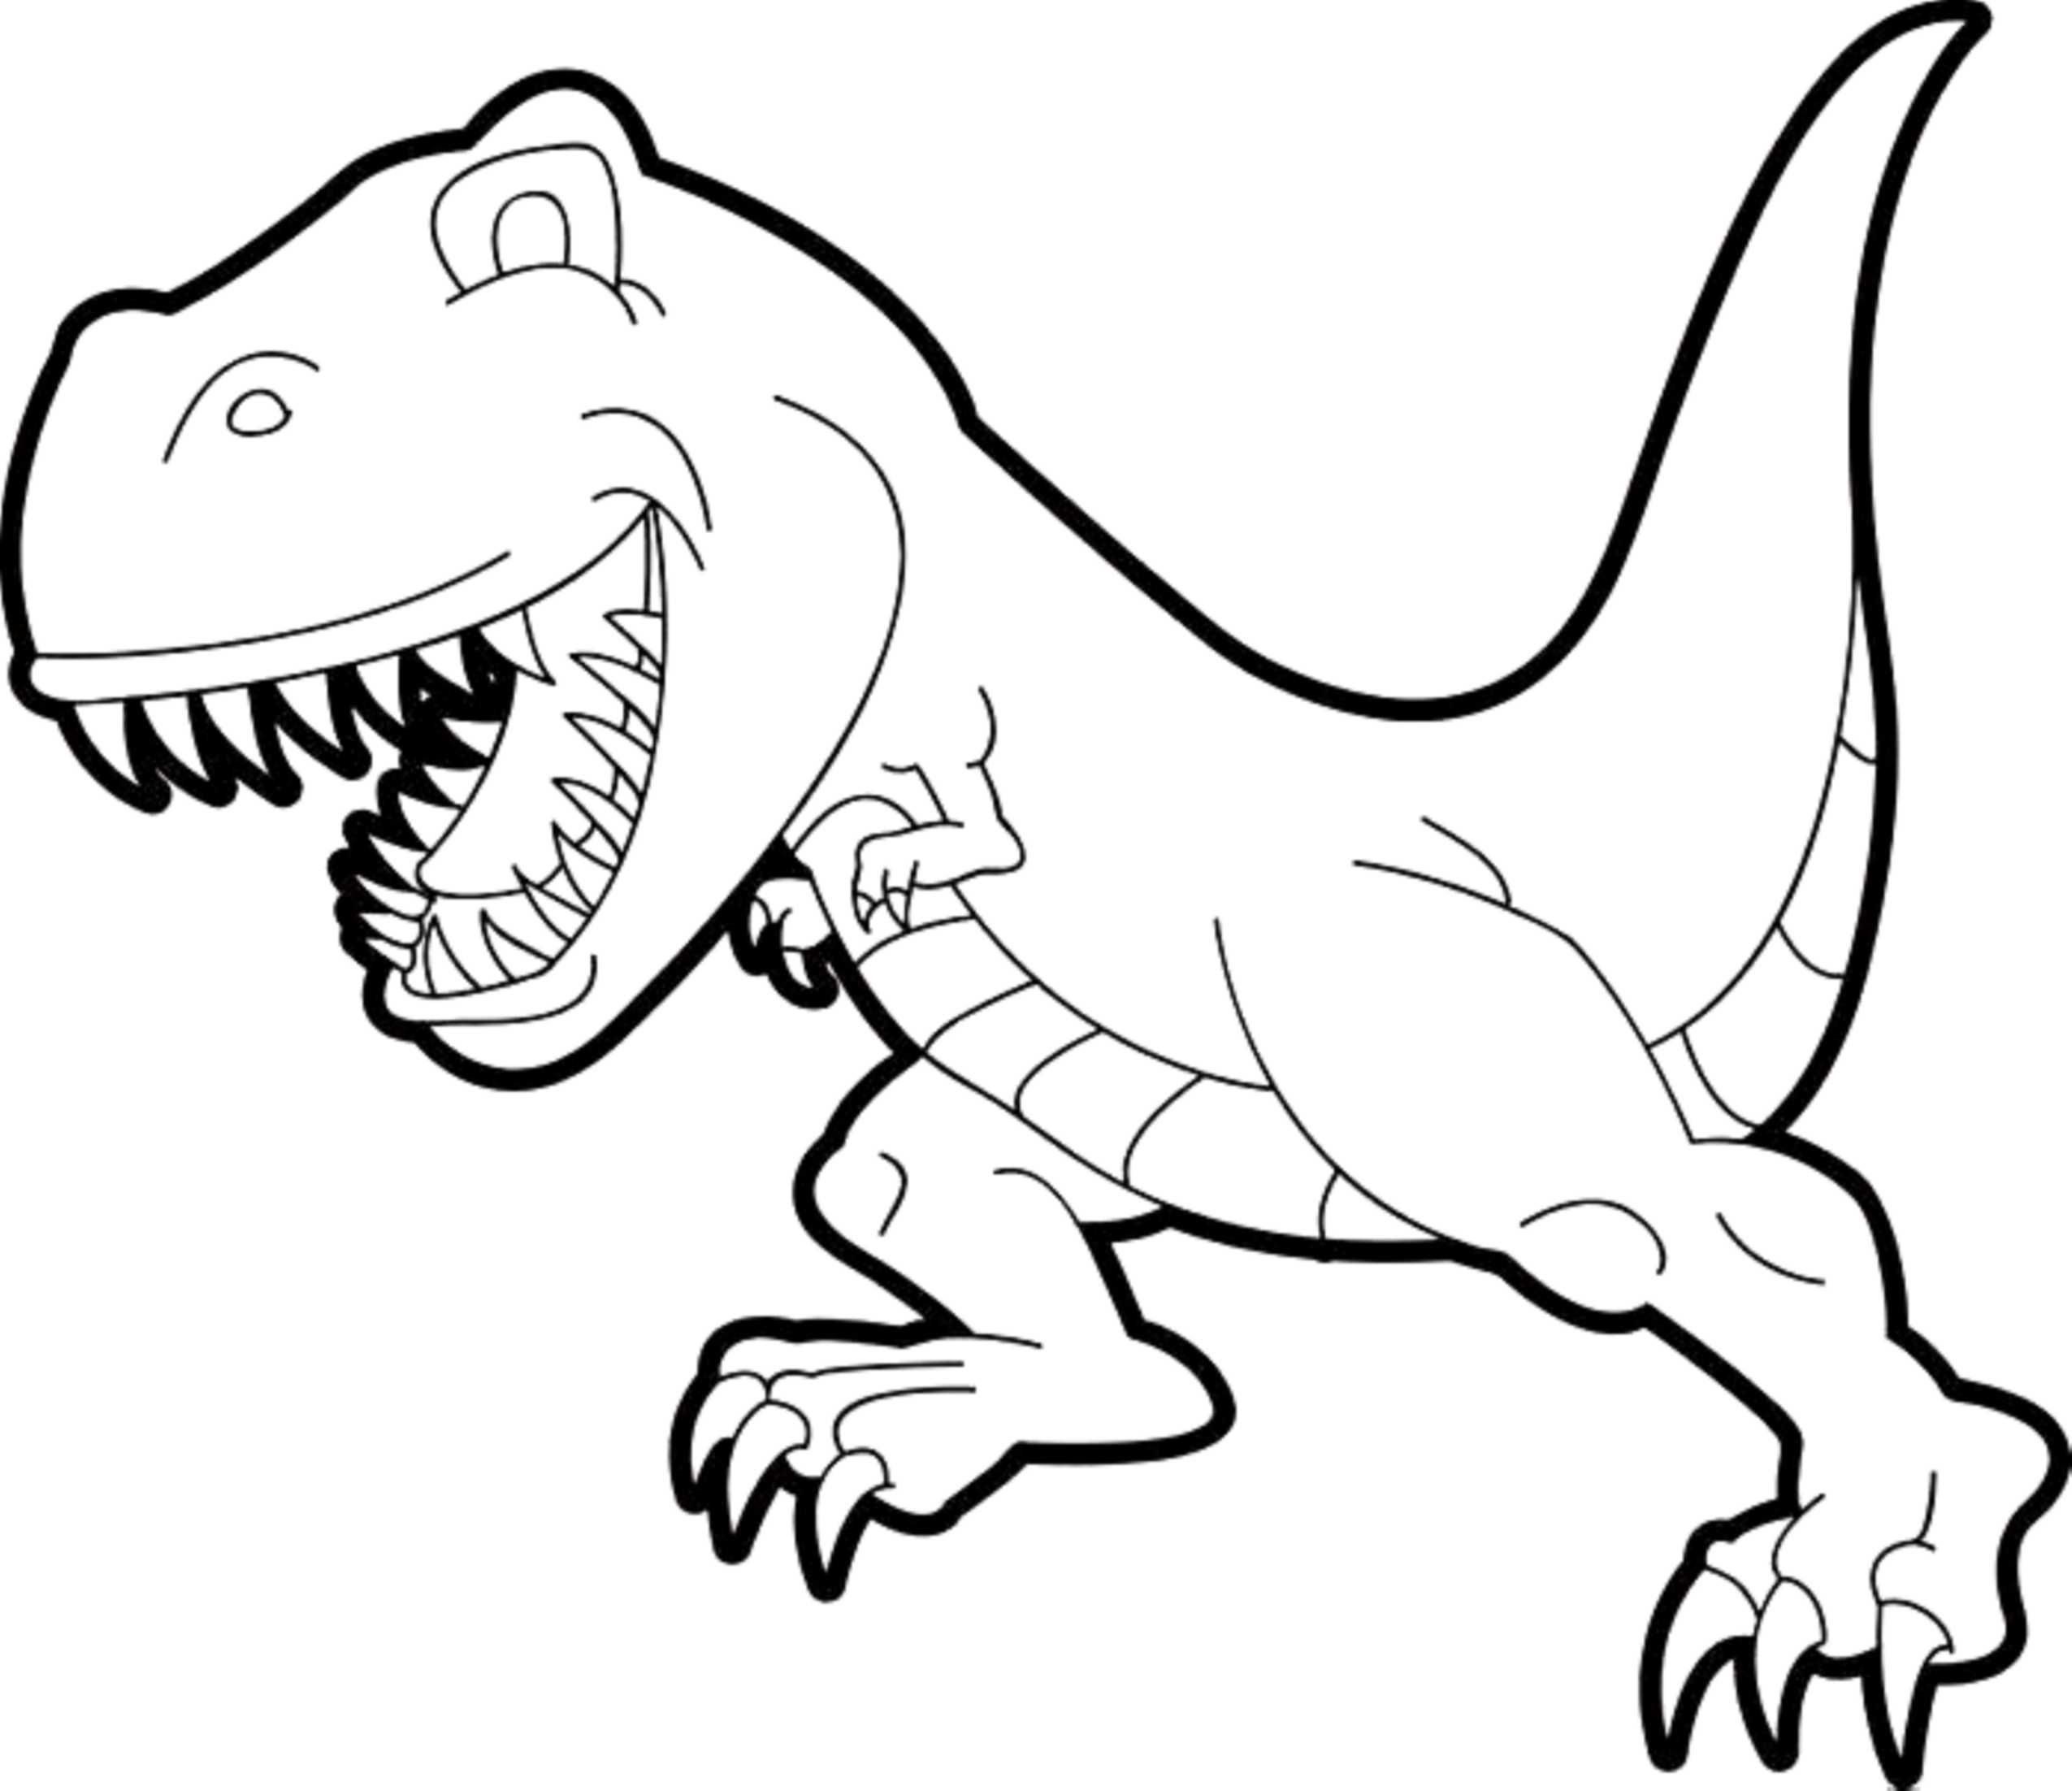 10 Printable T Rex Dinosaur Pictures Printable T Rex Stencils Printable T Shirts Printable Dinosaur Coloring Dinosaur Coloring Pages Animal Coloring Pages